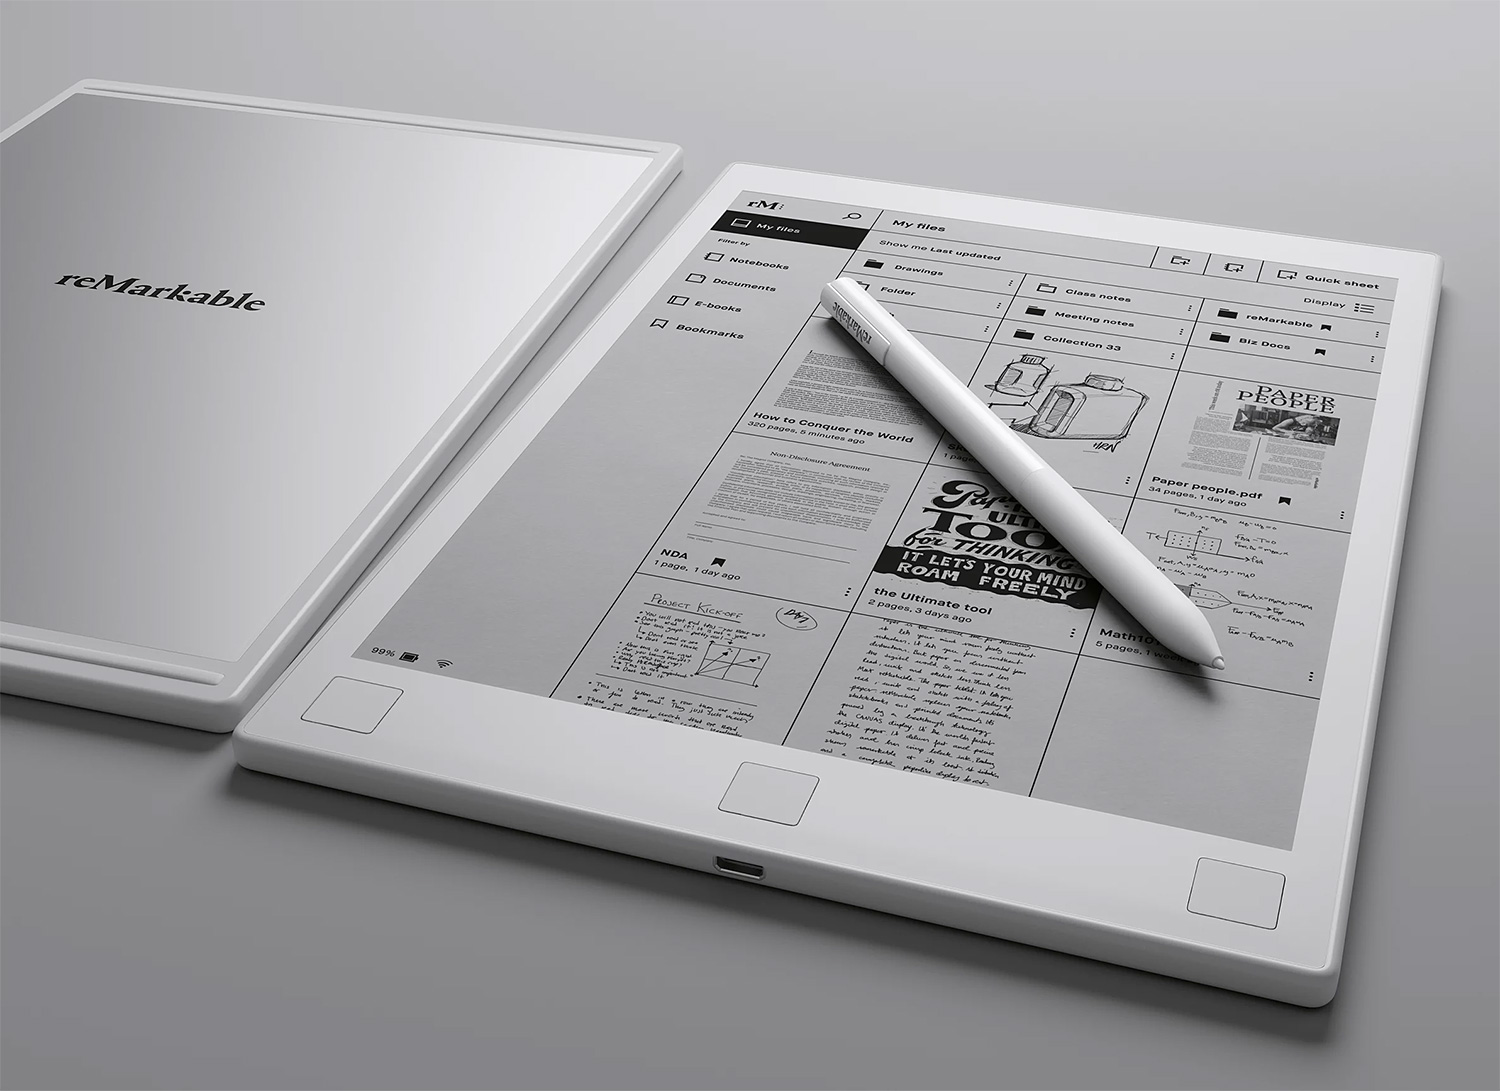 This E-Paper Notepad is reMarkable at werd.com